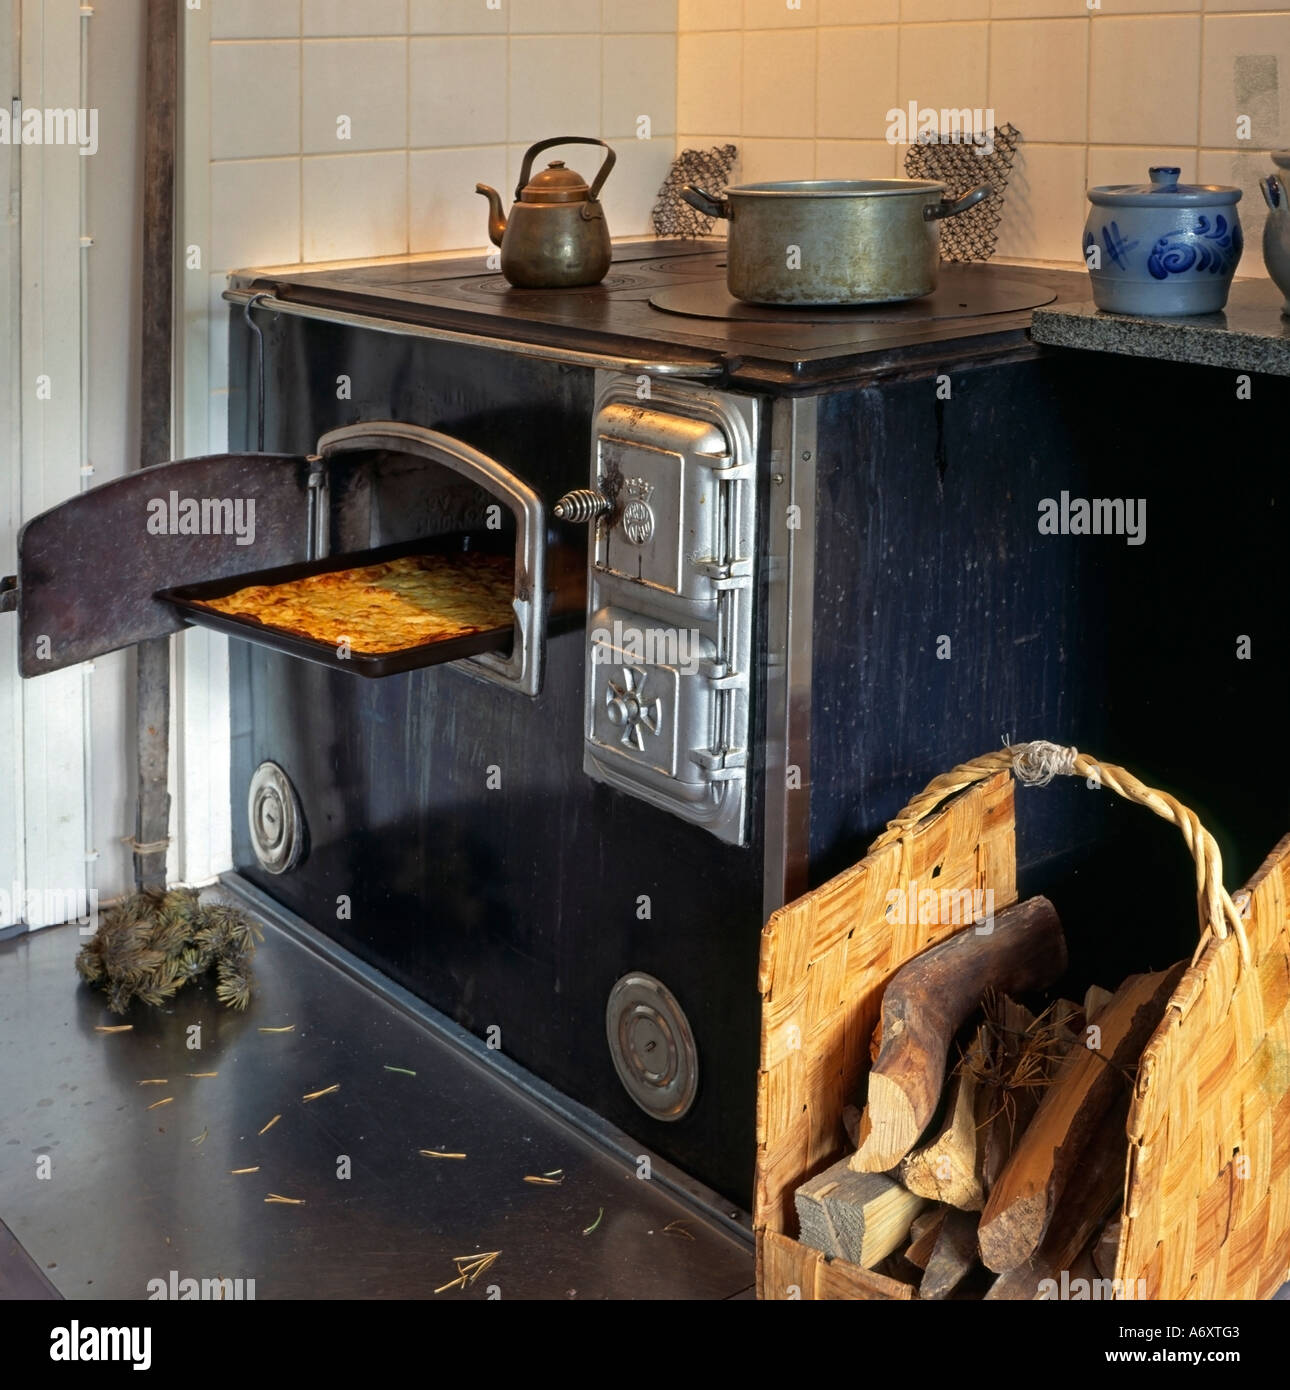 PR Old Kitchen Stove From Finland With A Baking Sheet In Wood Fired Oven